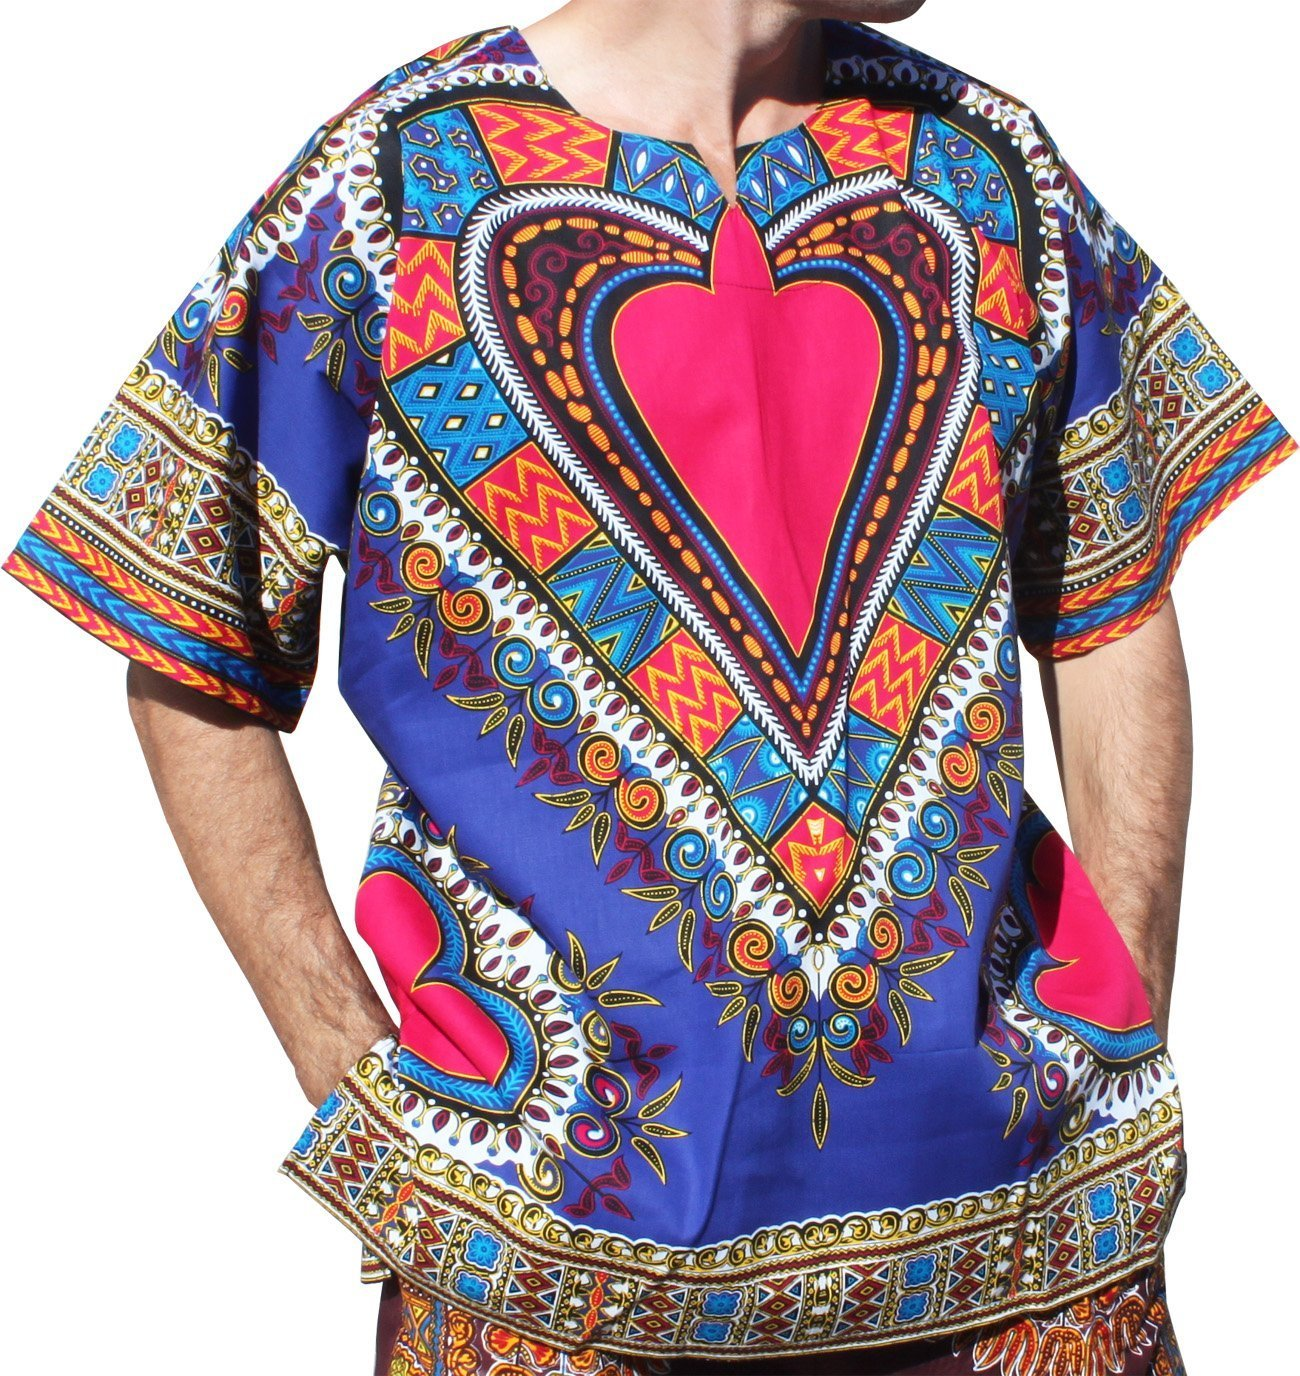 RaanPahMuang Bright Heart Cotton Africa Dashiki Plus Sized Shirt Plain Front, XXXXXXX-Large, Medium Blue by RaanPahMuang